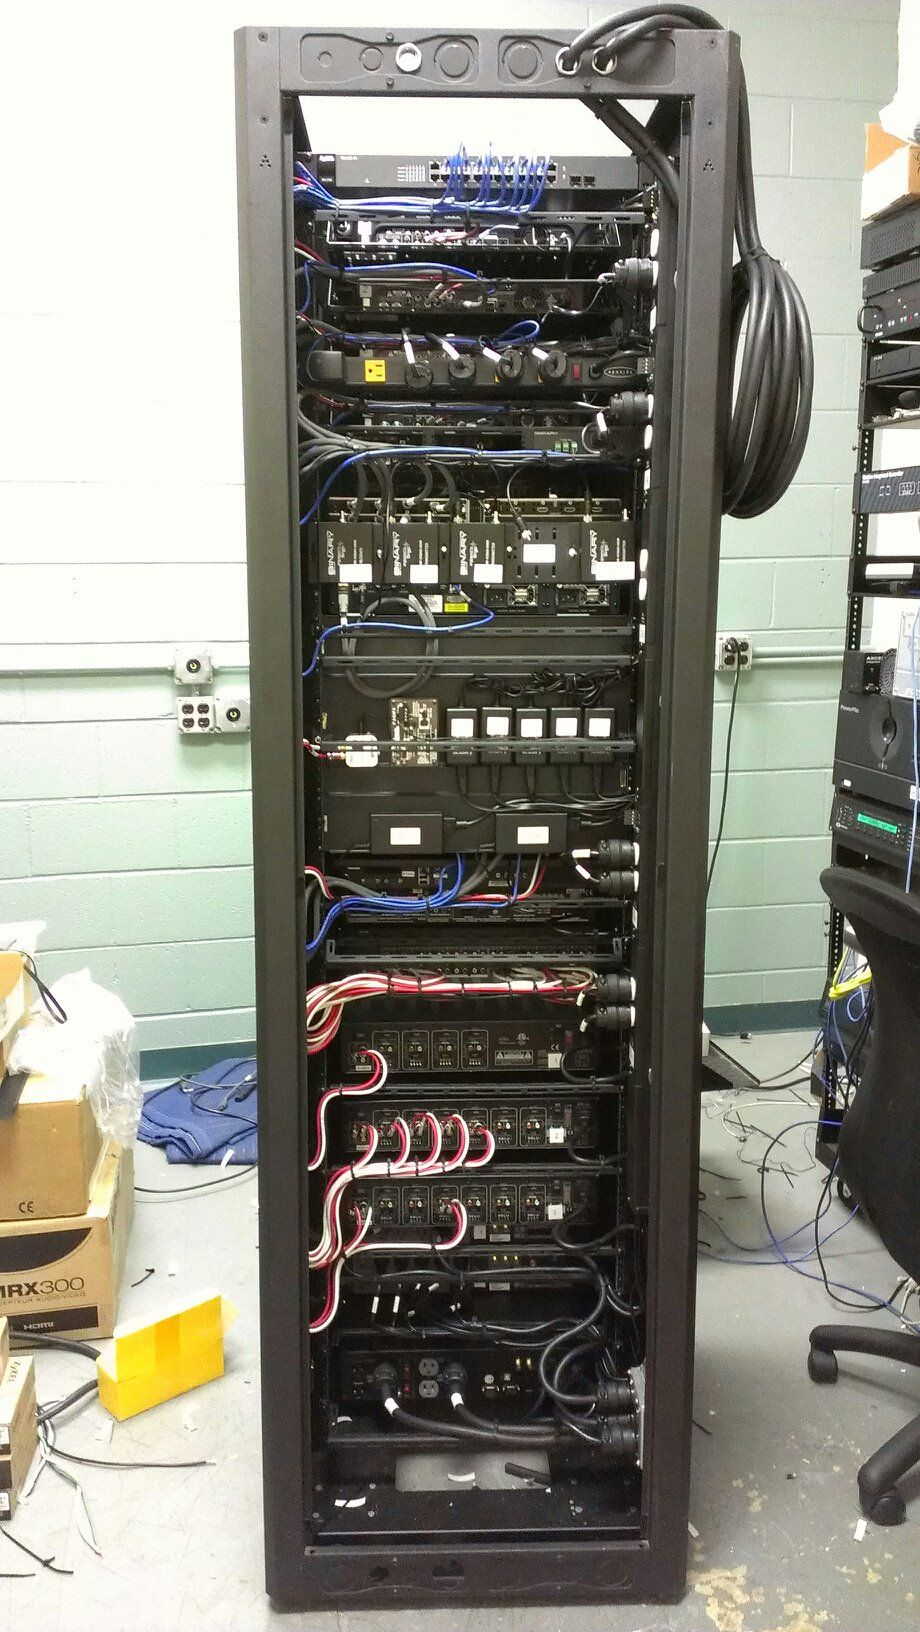 hight resolution of av distribution rack set up by a professional they did a great job